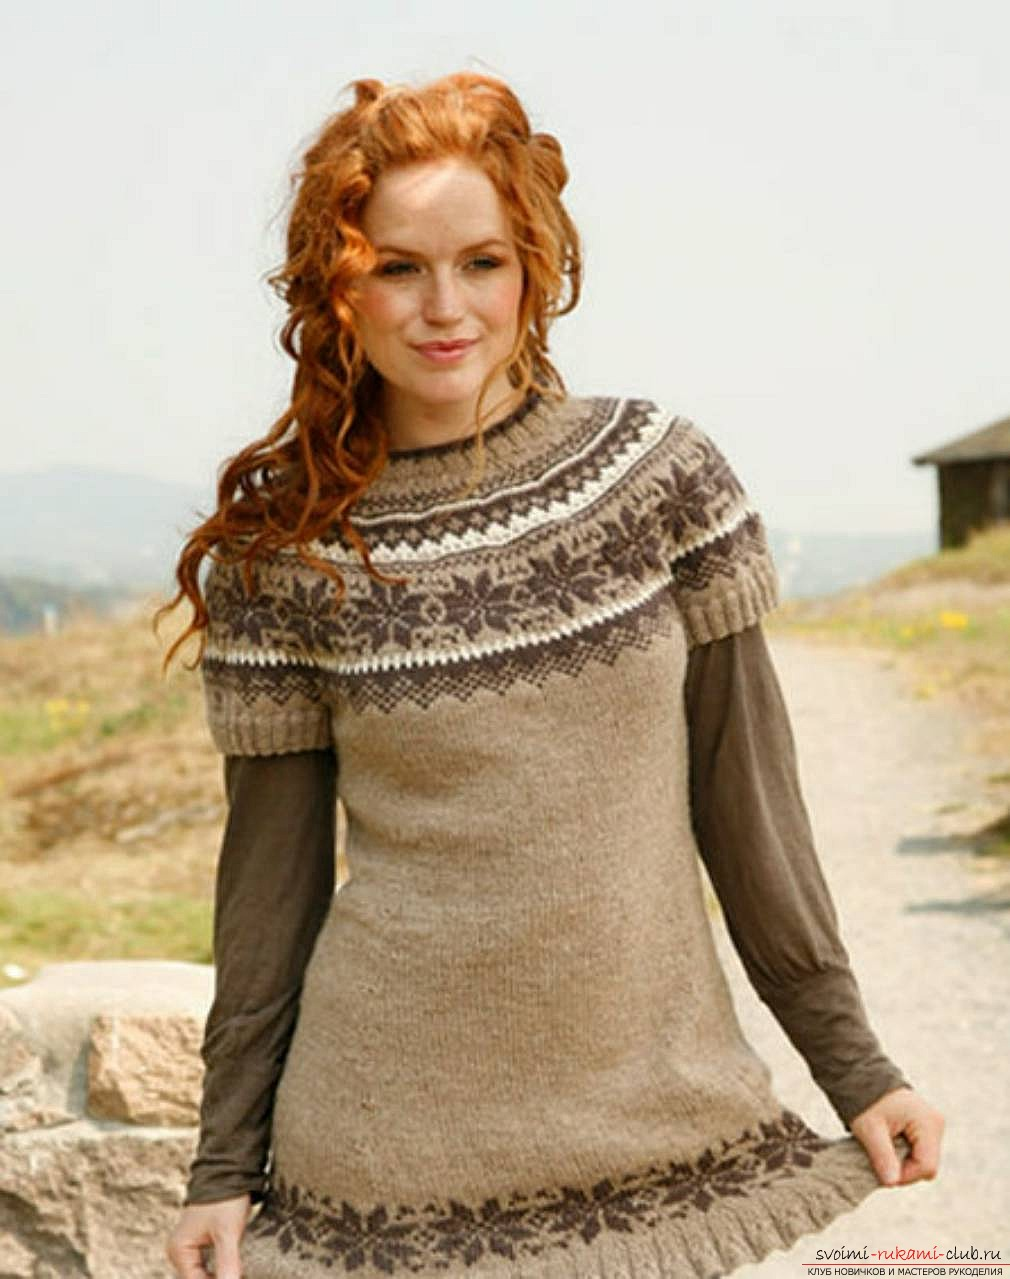 knitted knitting sweater with a Norwegian pattern. Photo # 2